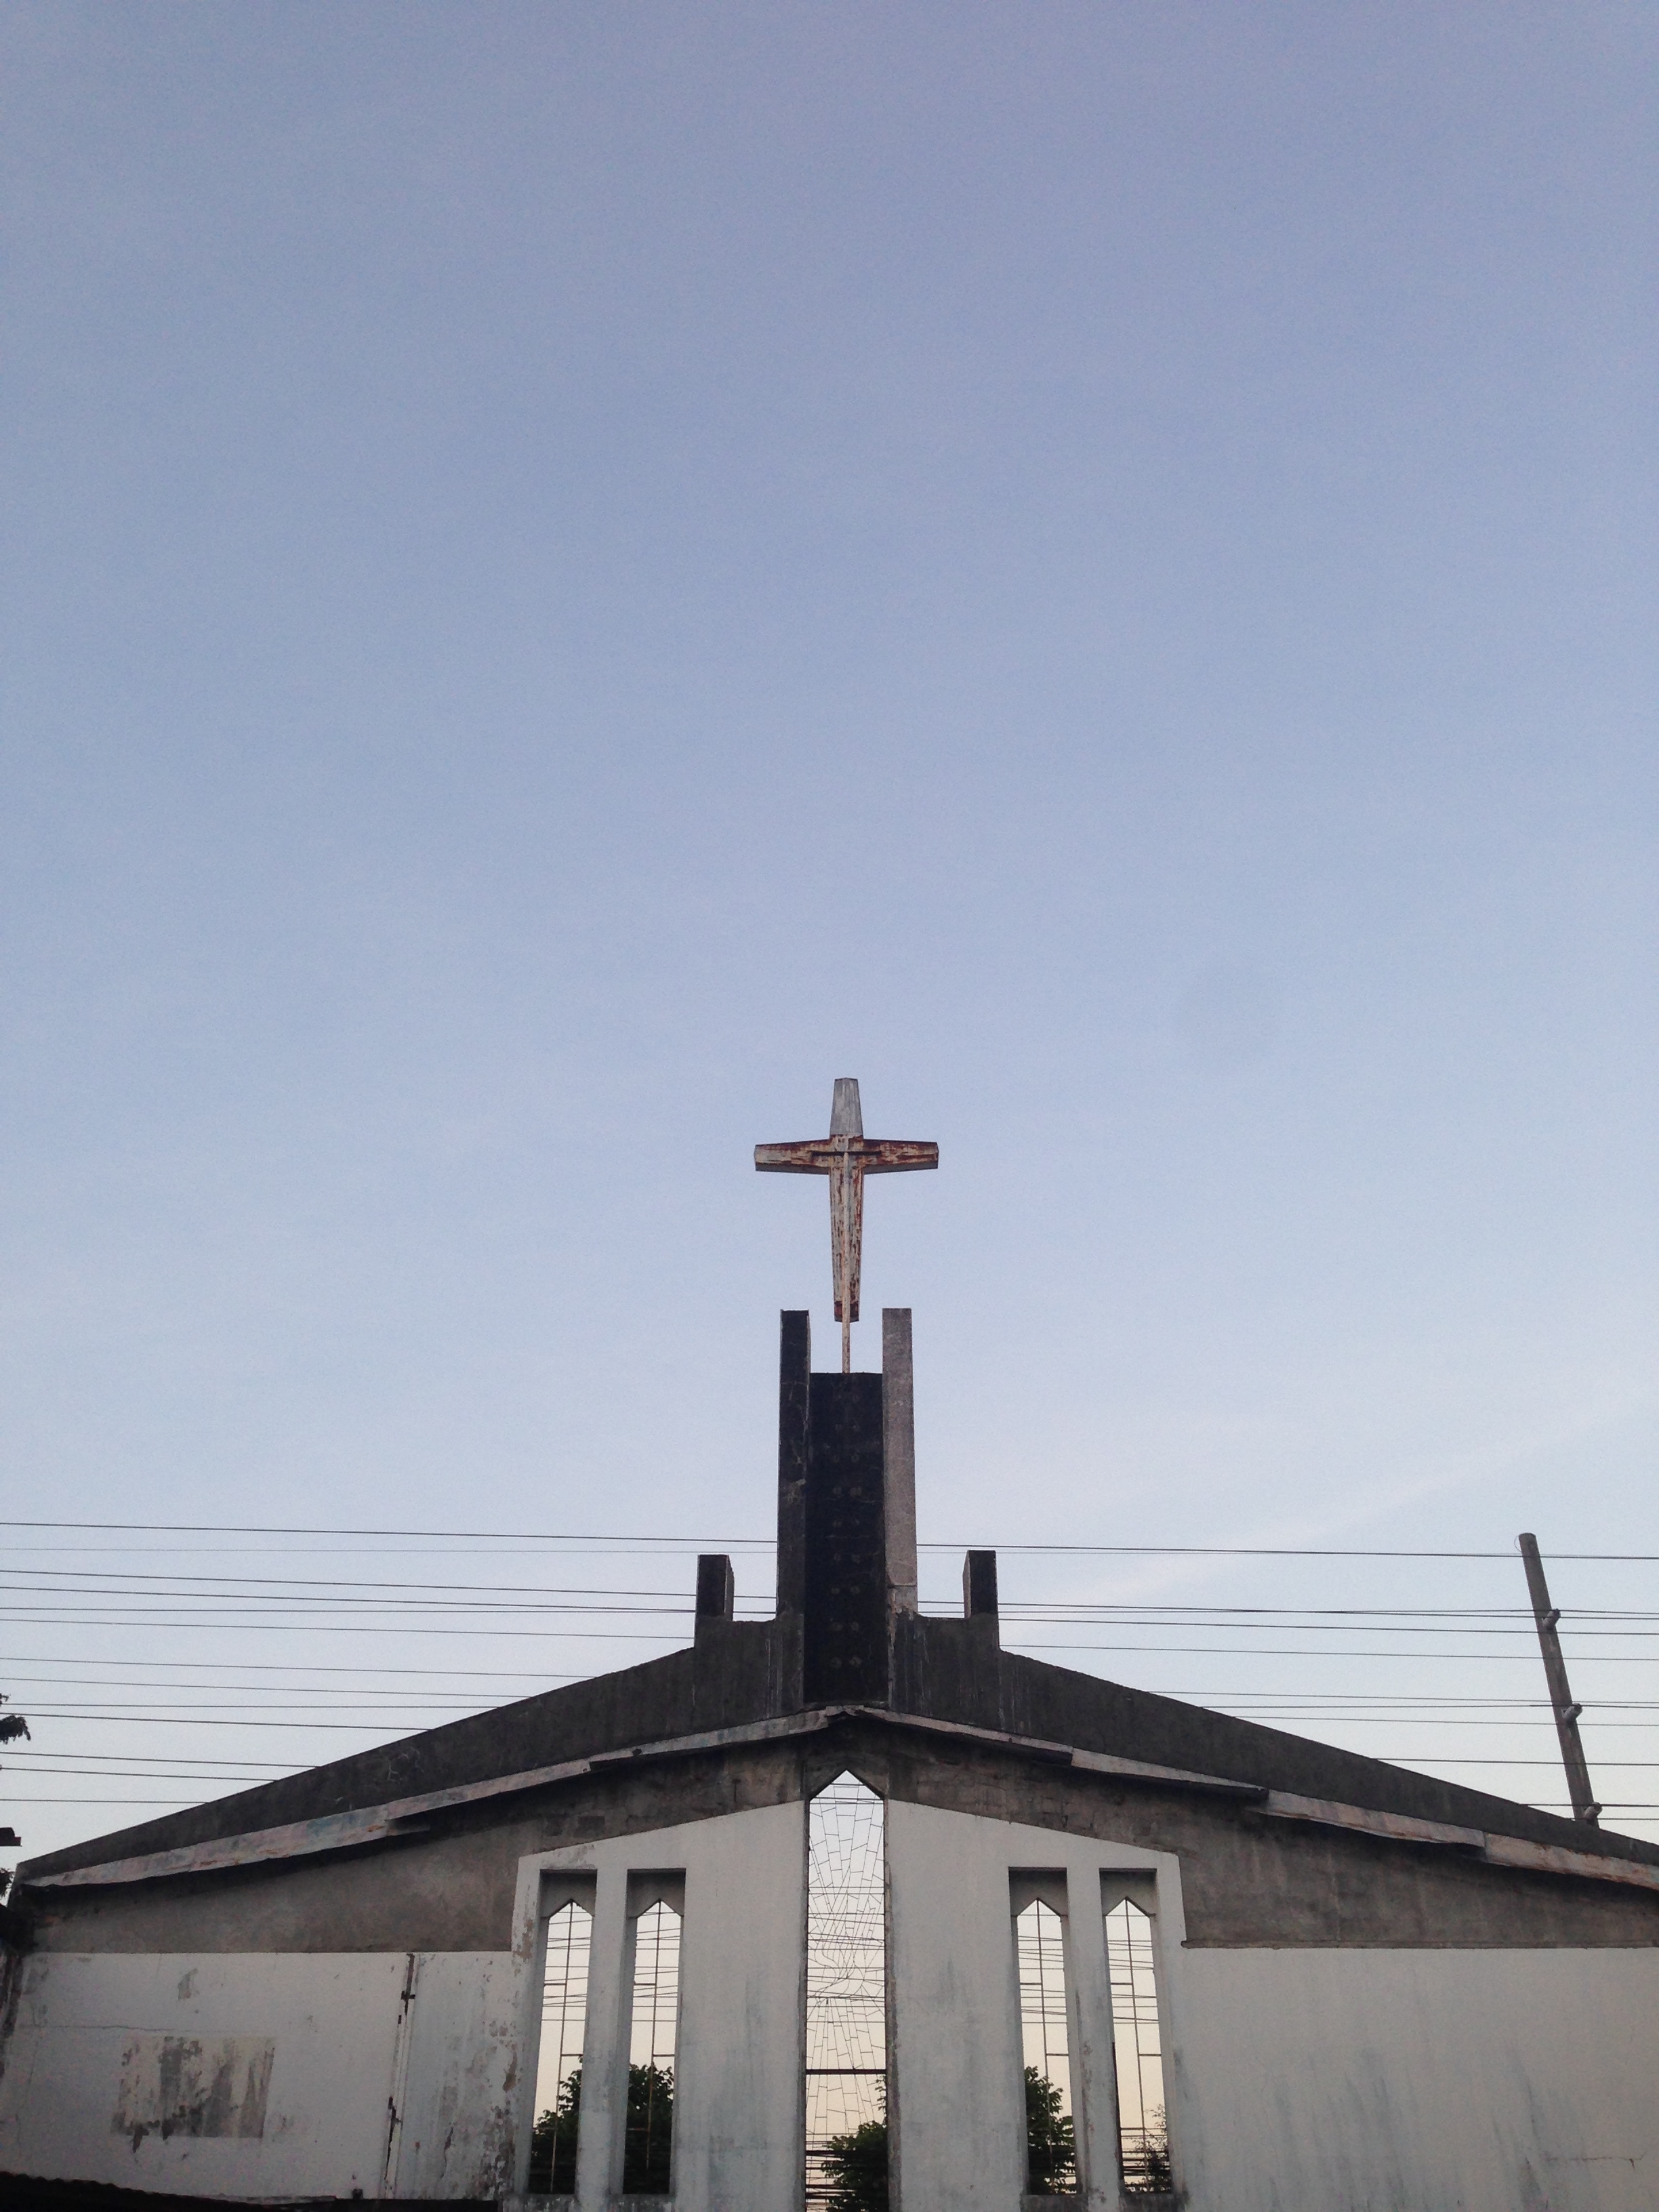 Epic roofless church down the street from Walking Street